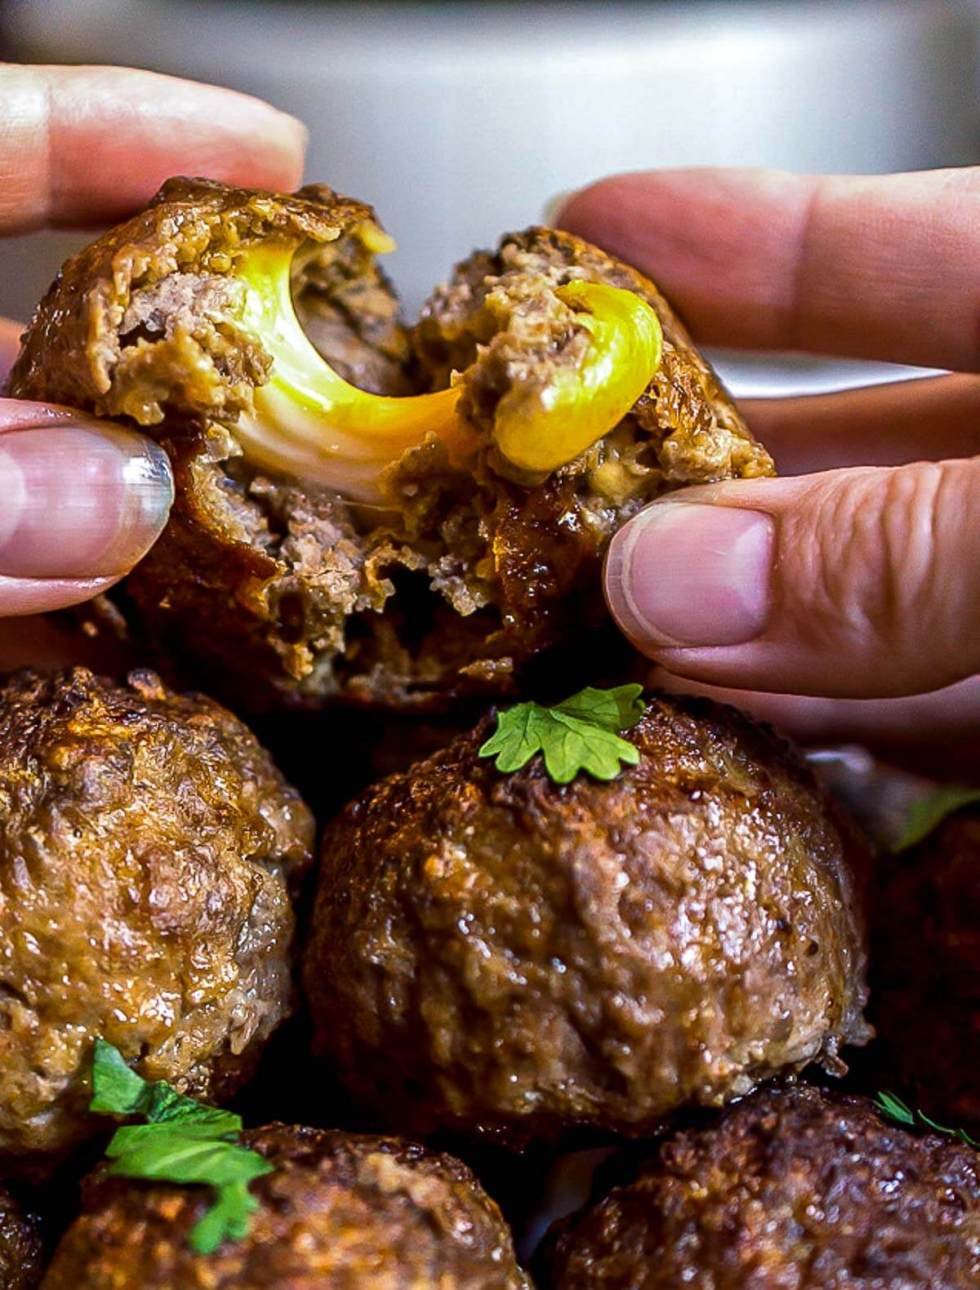 hands pulling apart a stuffed meatball with cheese oozing out